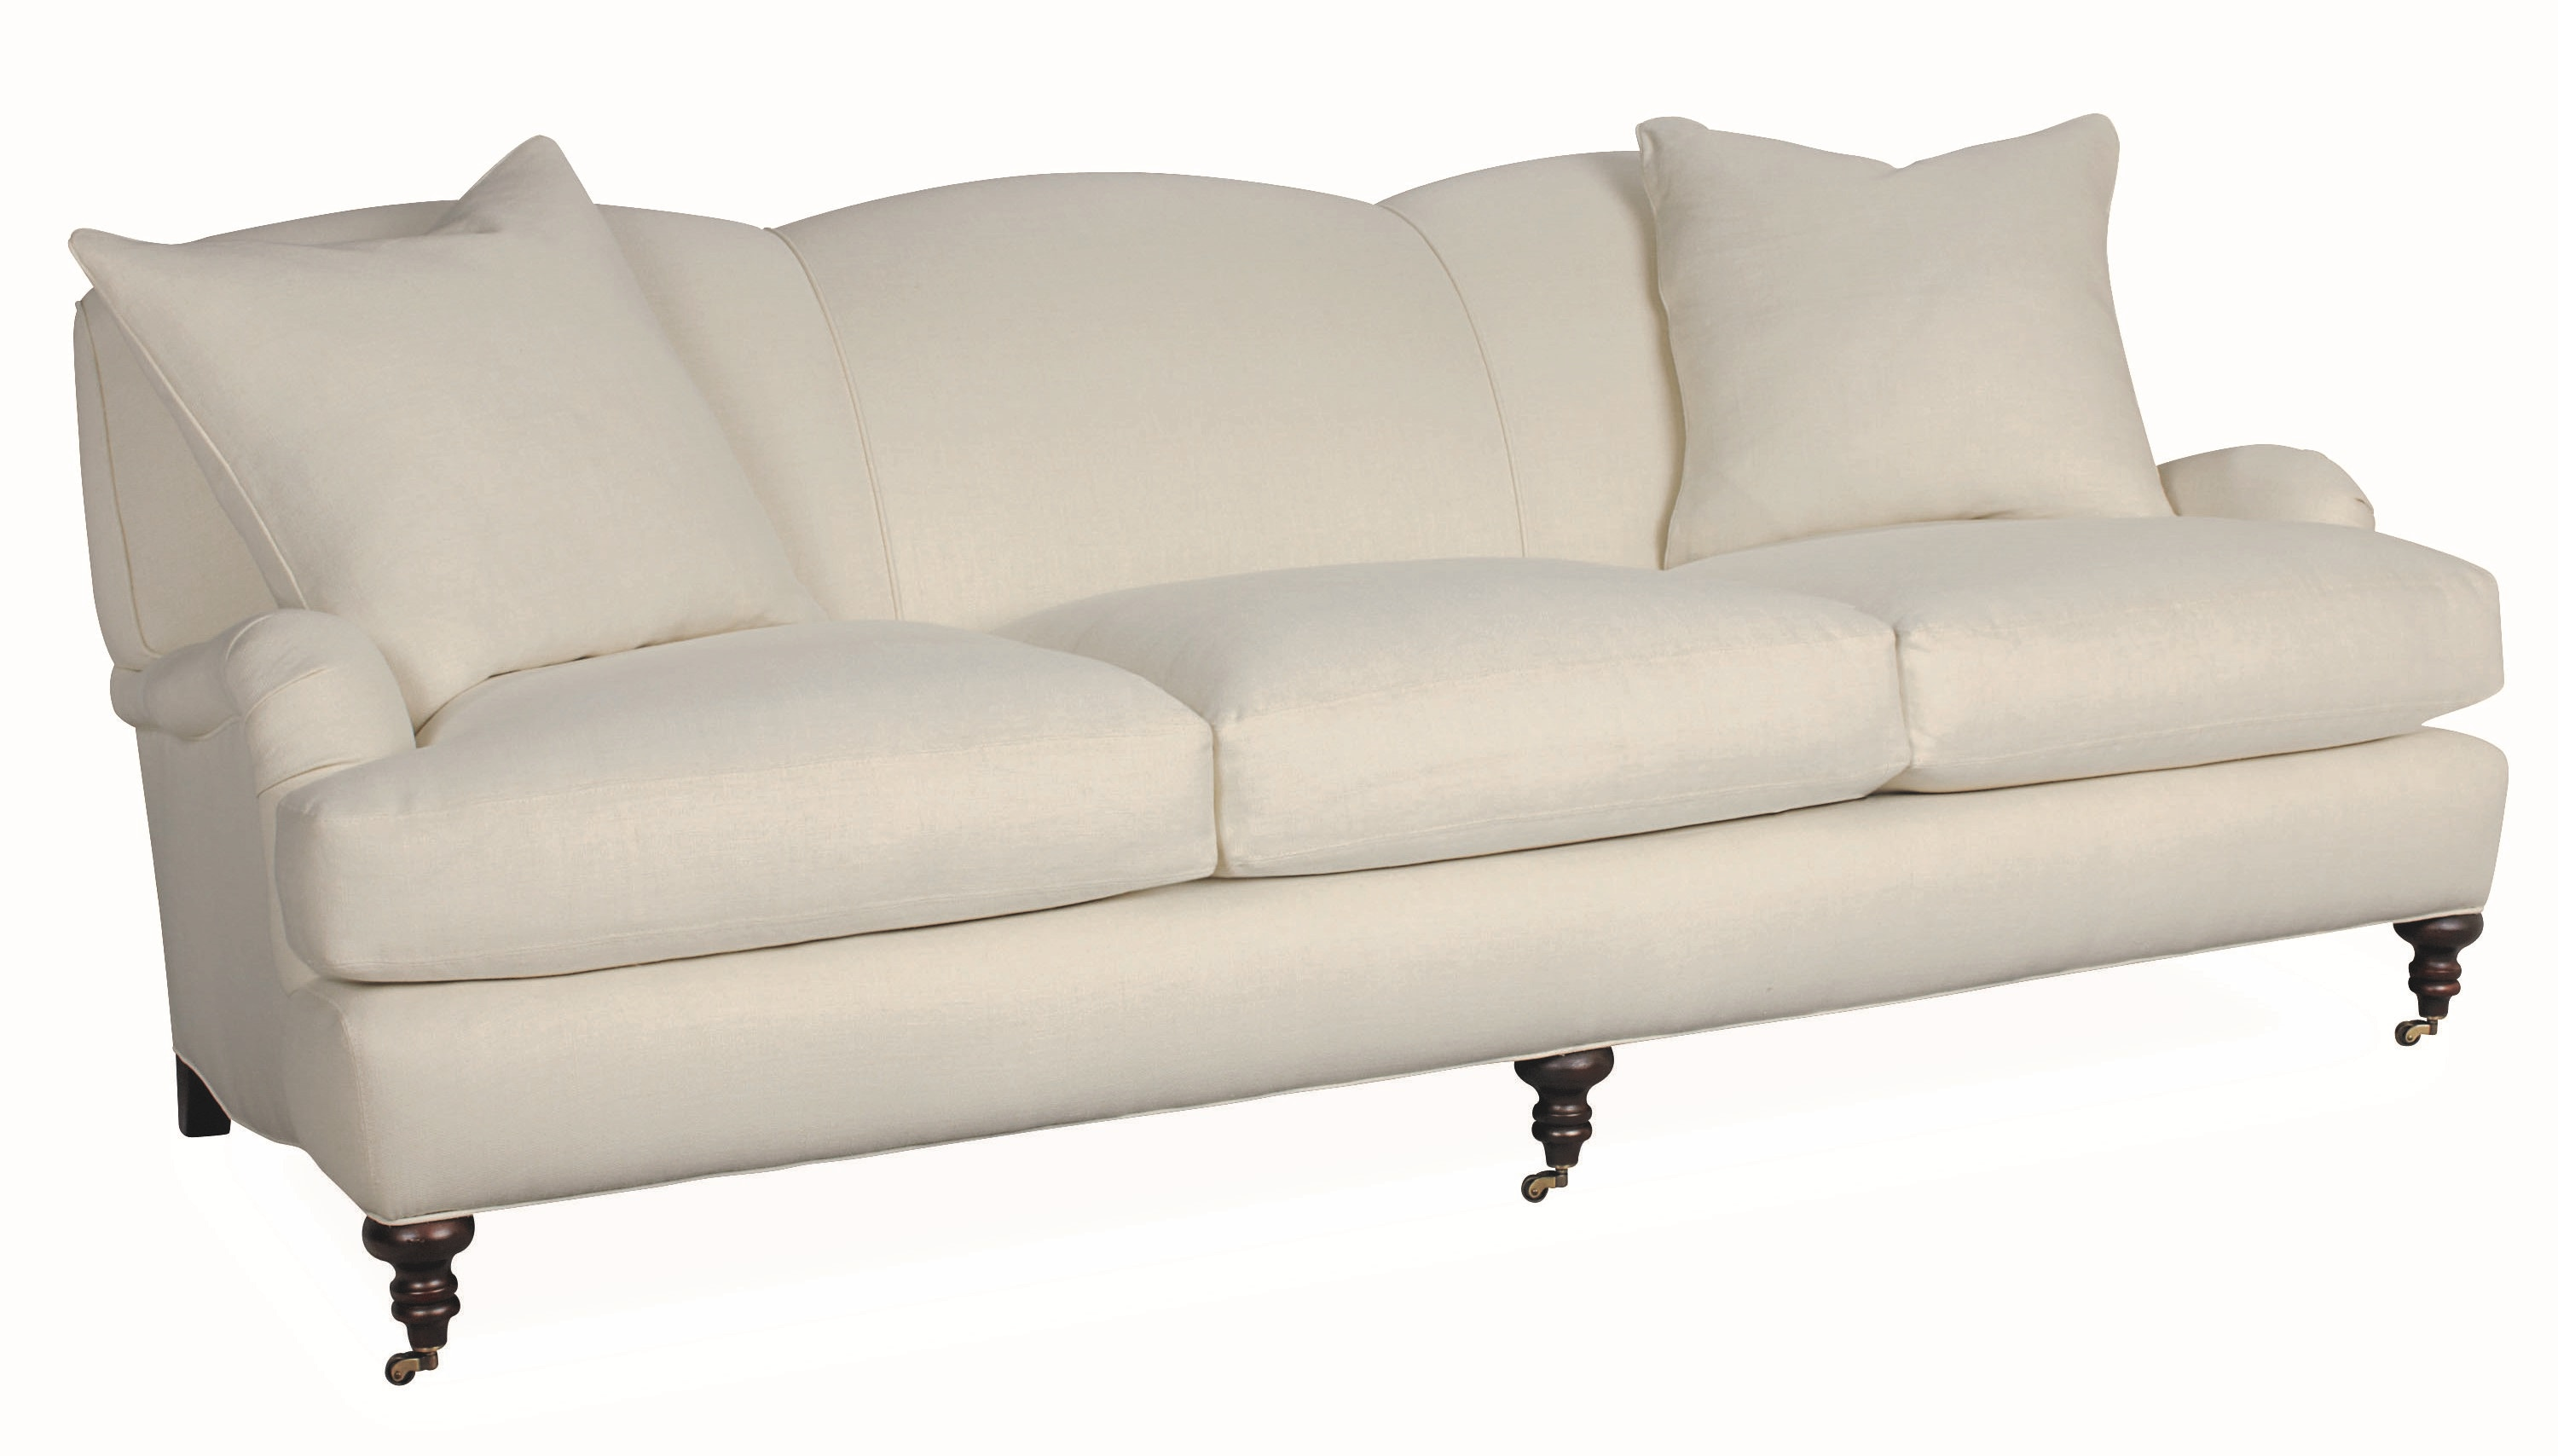 Lee Industries Sofa 3278 03